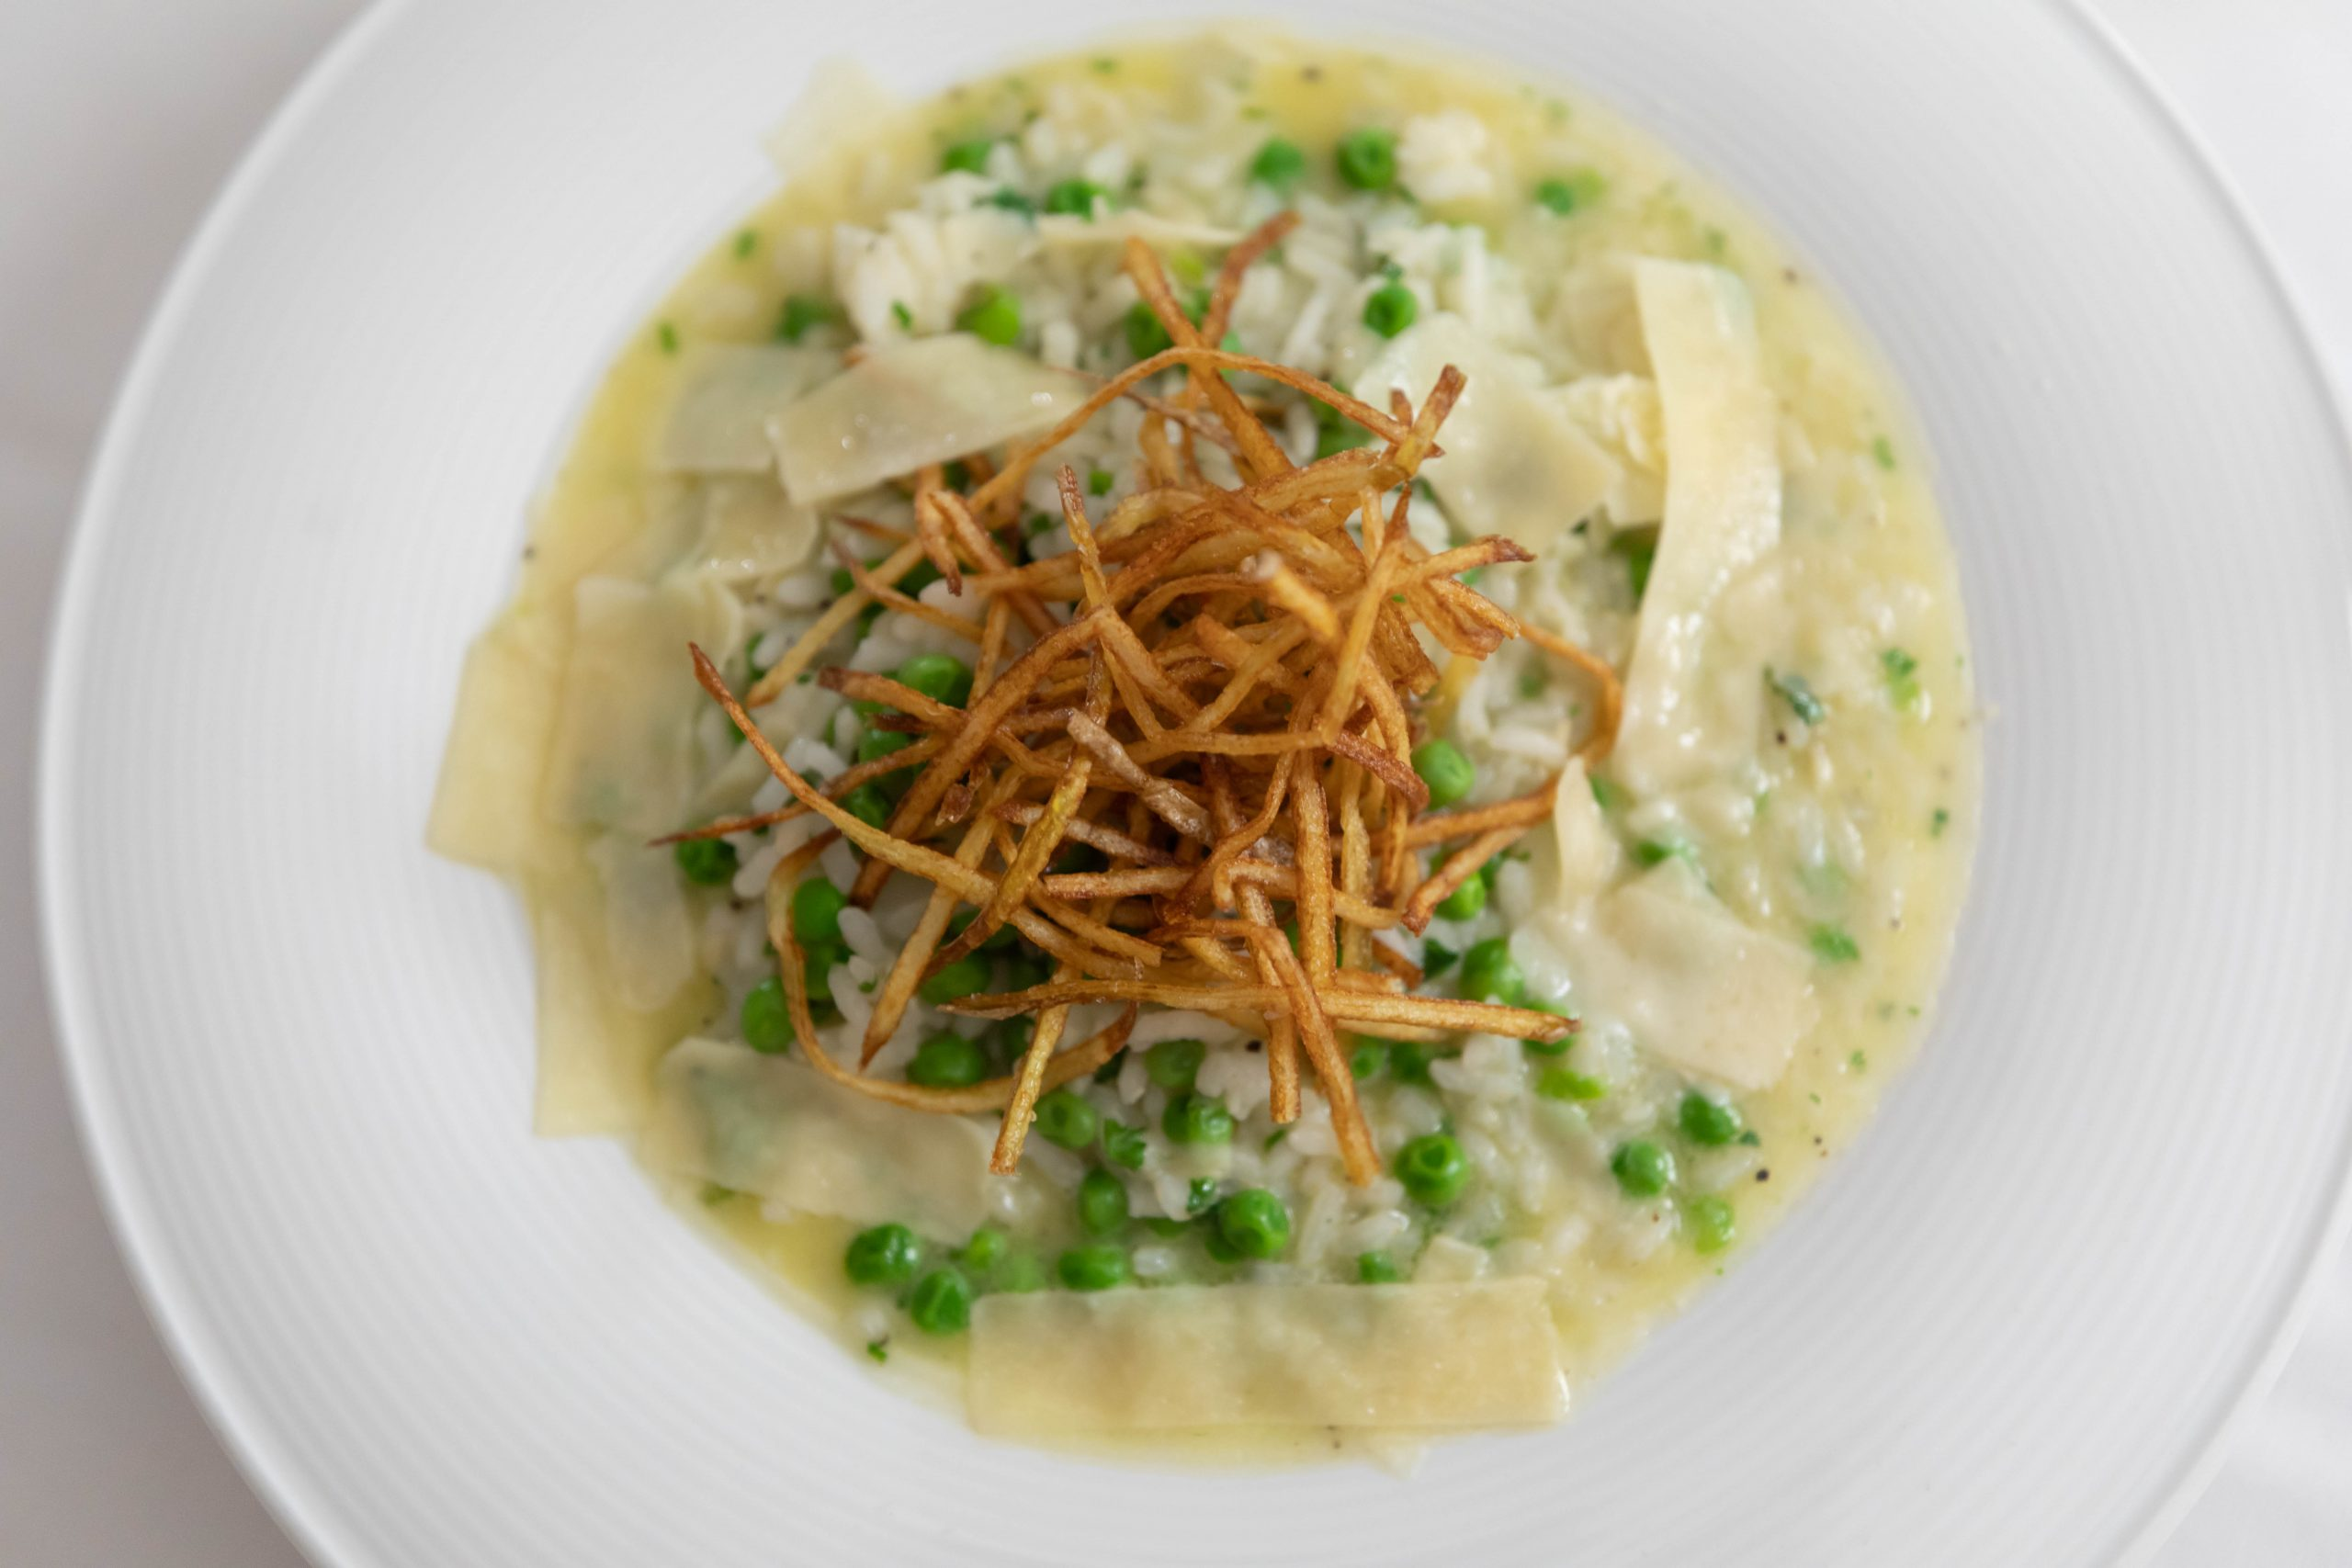 Risotto from Aerie Restaurant at Grand Traverse Resort & Spa in Acme Traverse City Michigan Photographed by Annie Fairfax